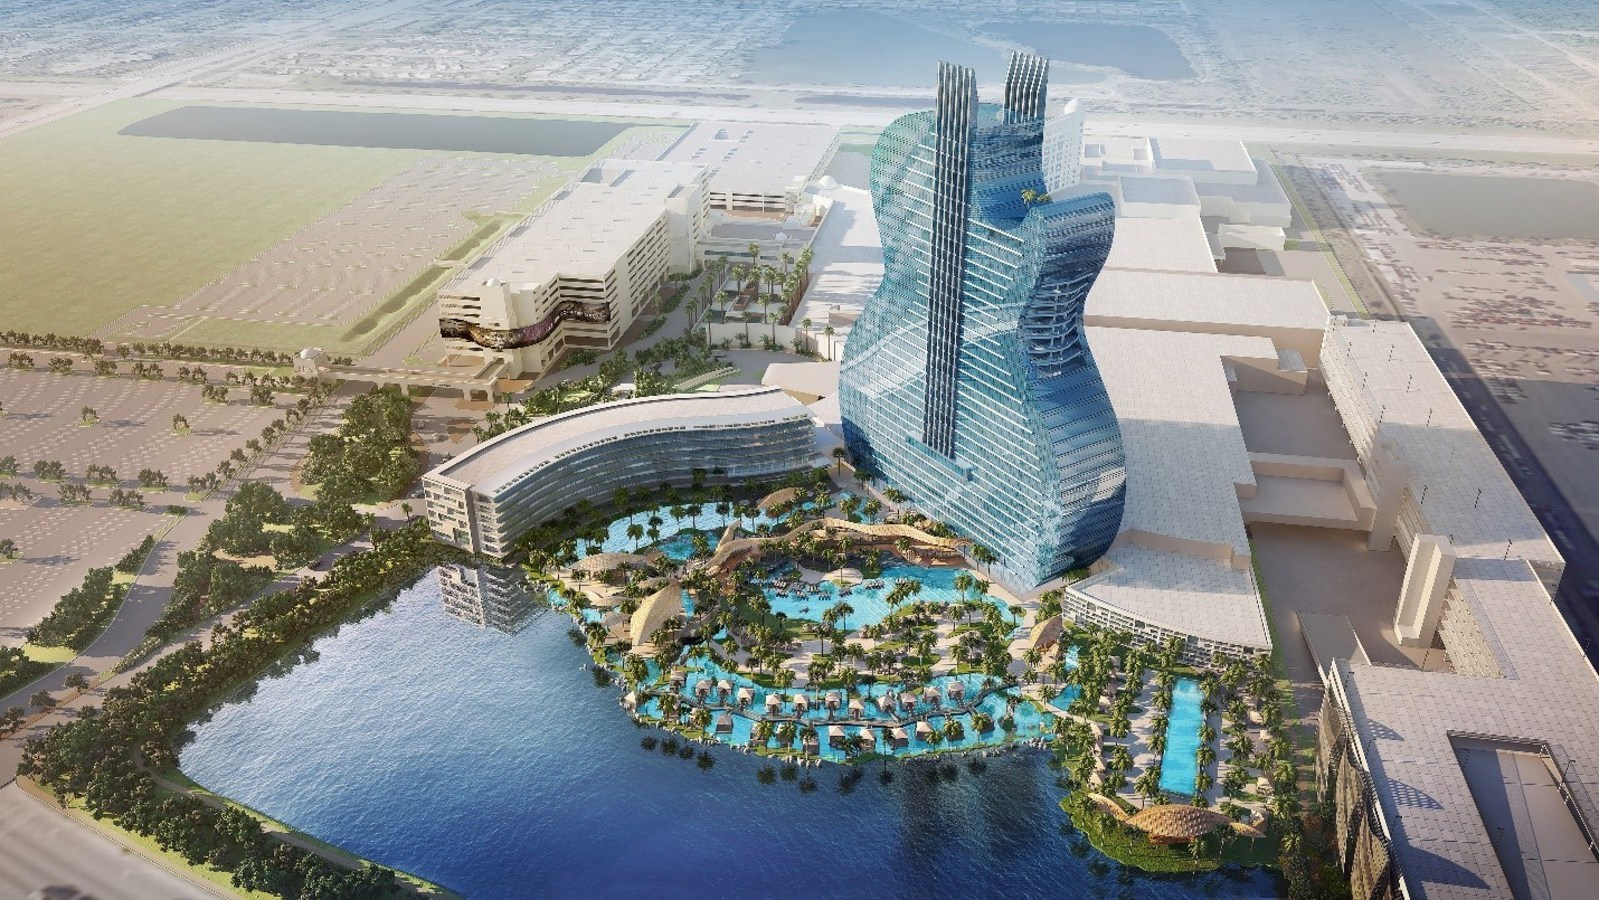 Iconic Guitar Hotel Tower Going Up At Seminole Hard Rock Hotel - Hotel design games